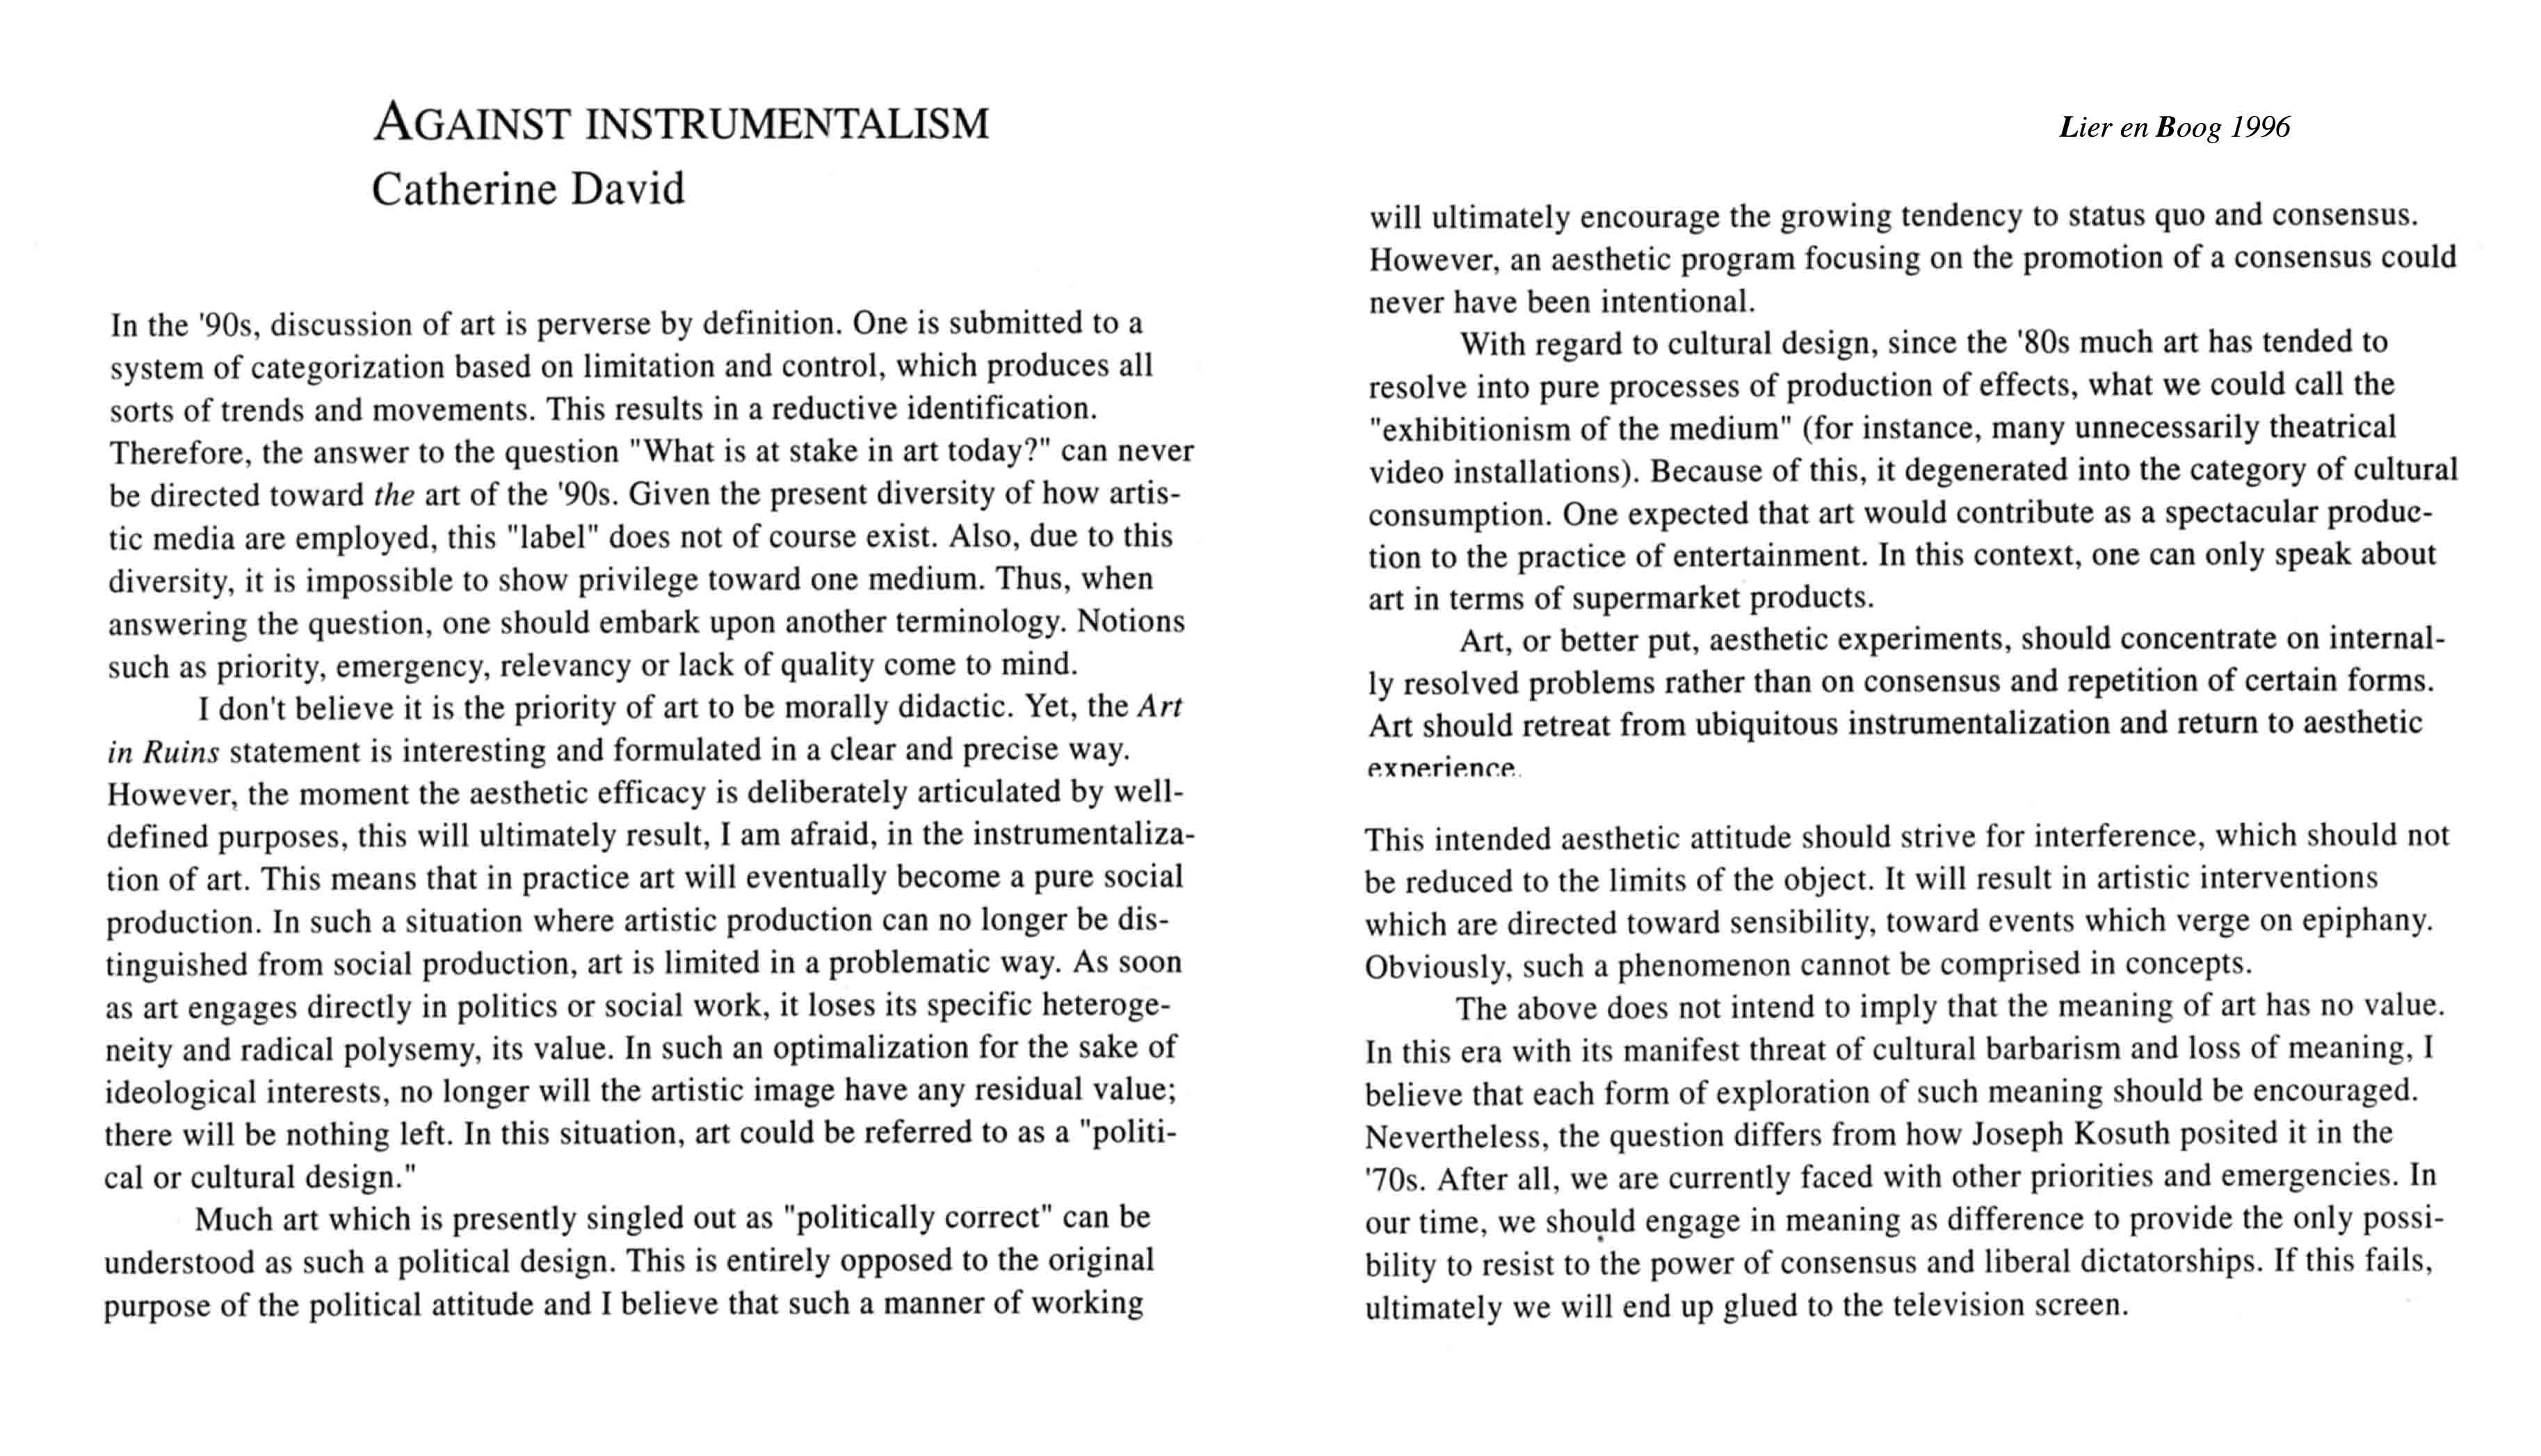 Catherine David. Against Instrumentalism. Lier en Boog 1996